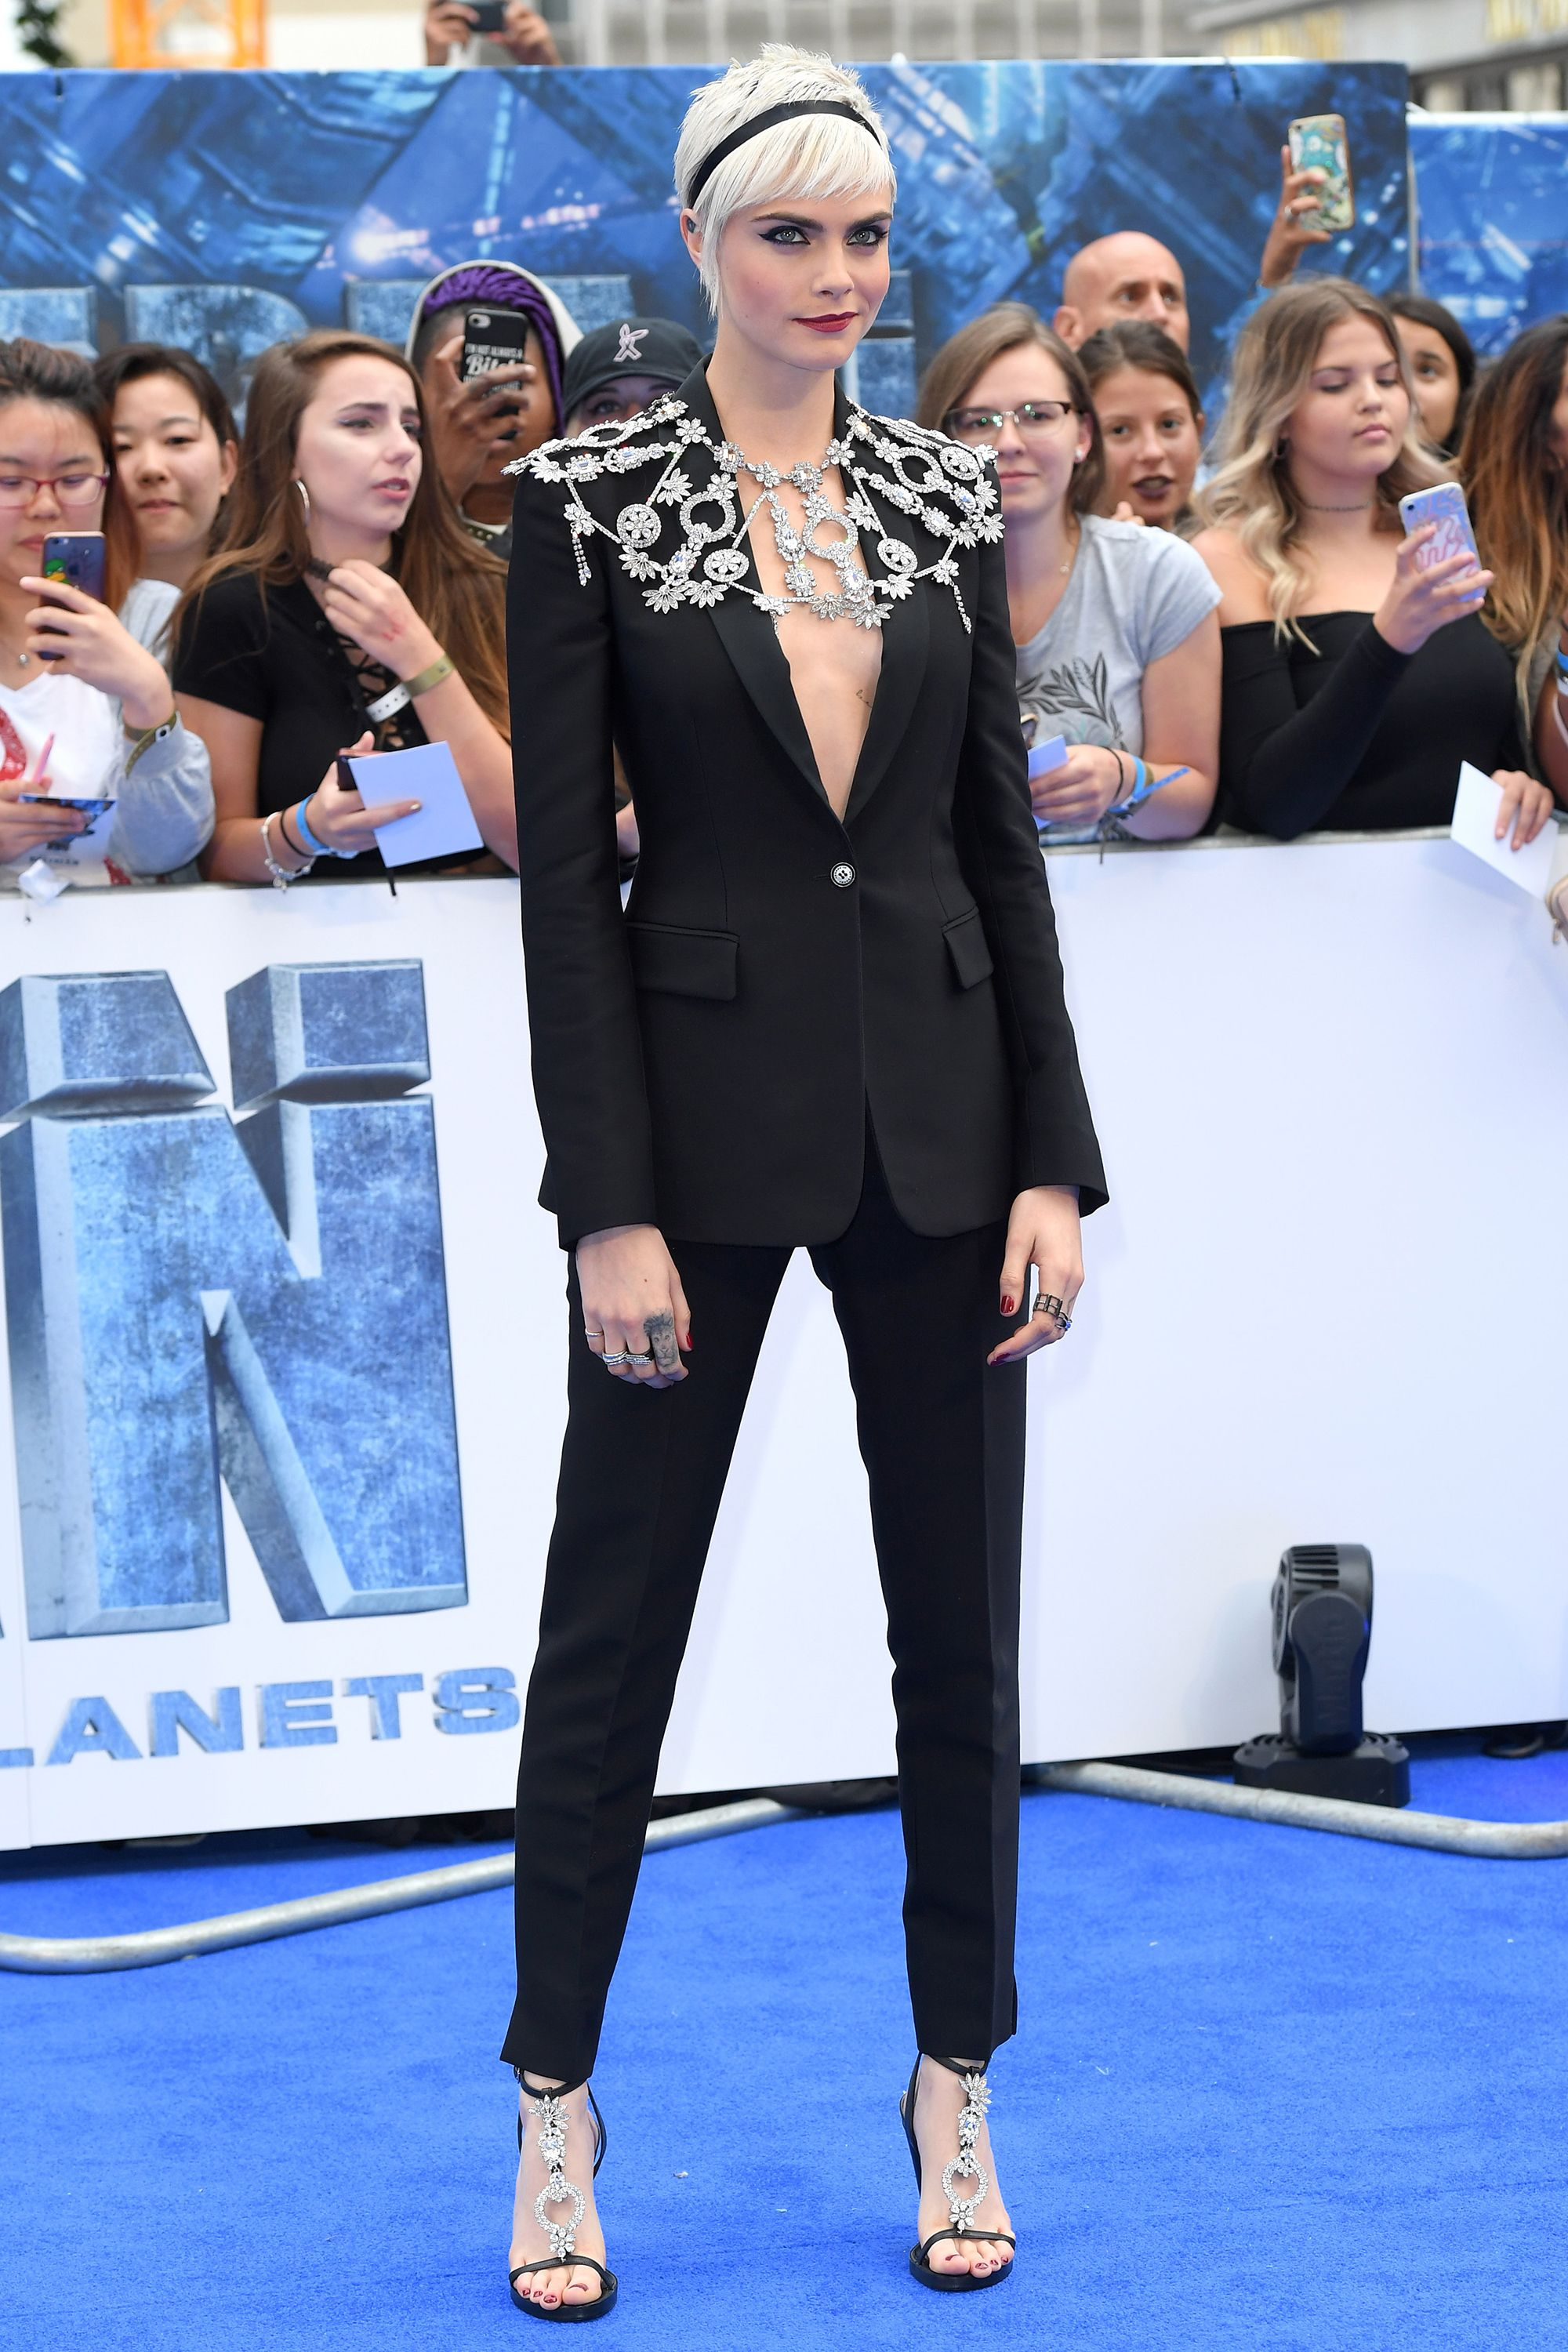 Cara Delevingne wearing Burberry at the Valerian premiere